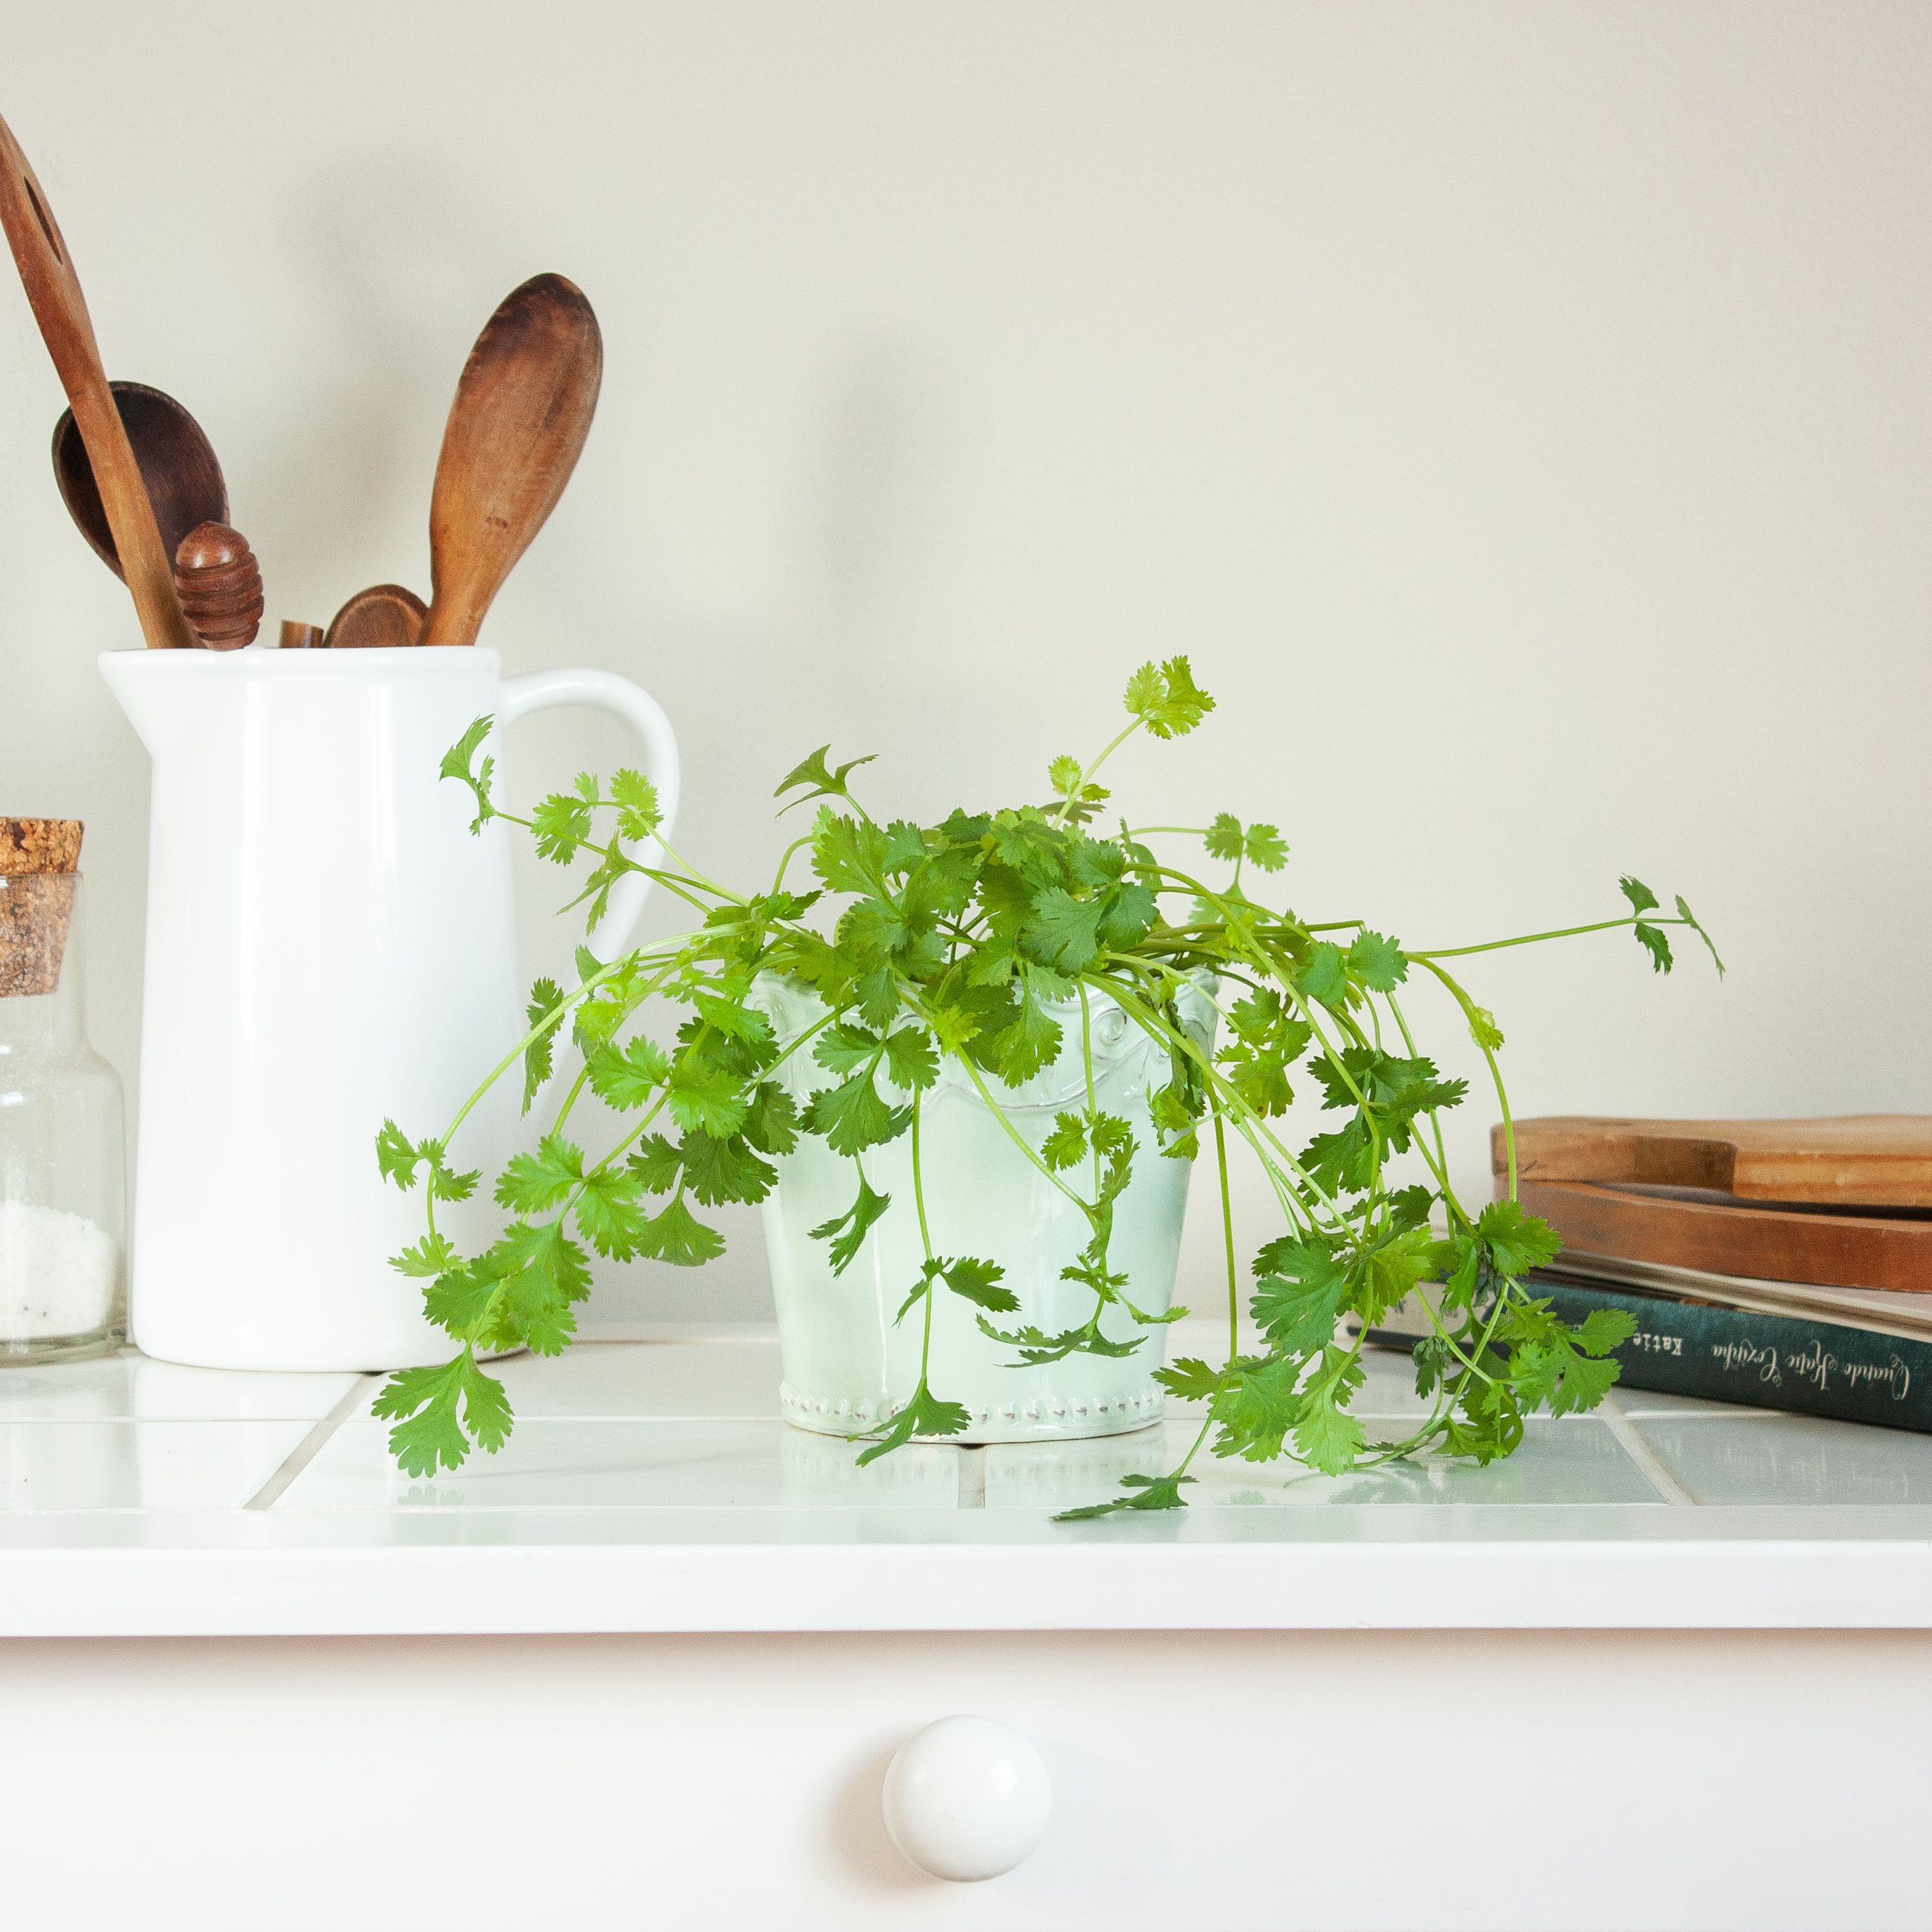 How To Grow And Care For Cilantro Coriander